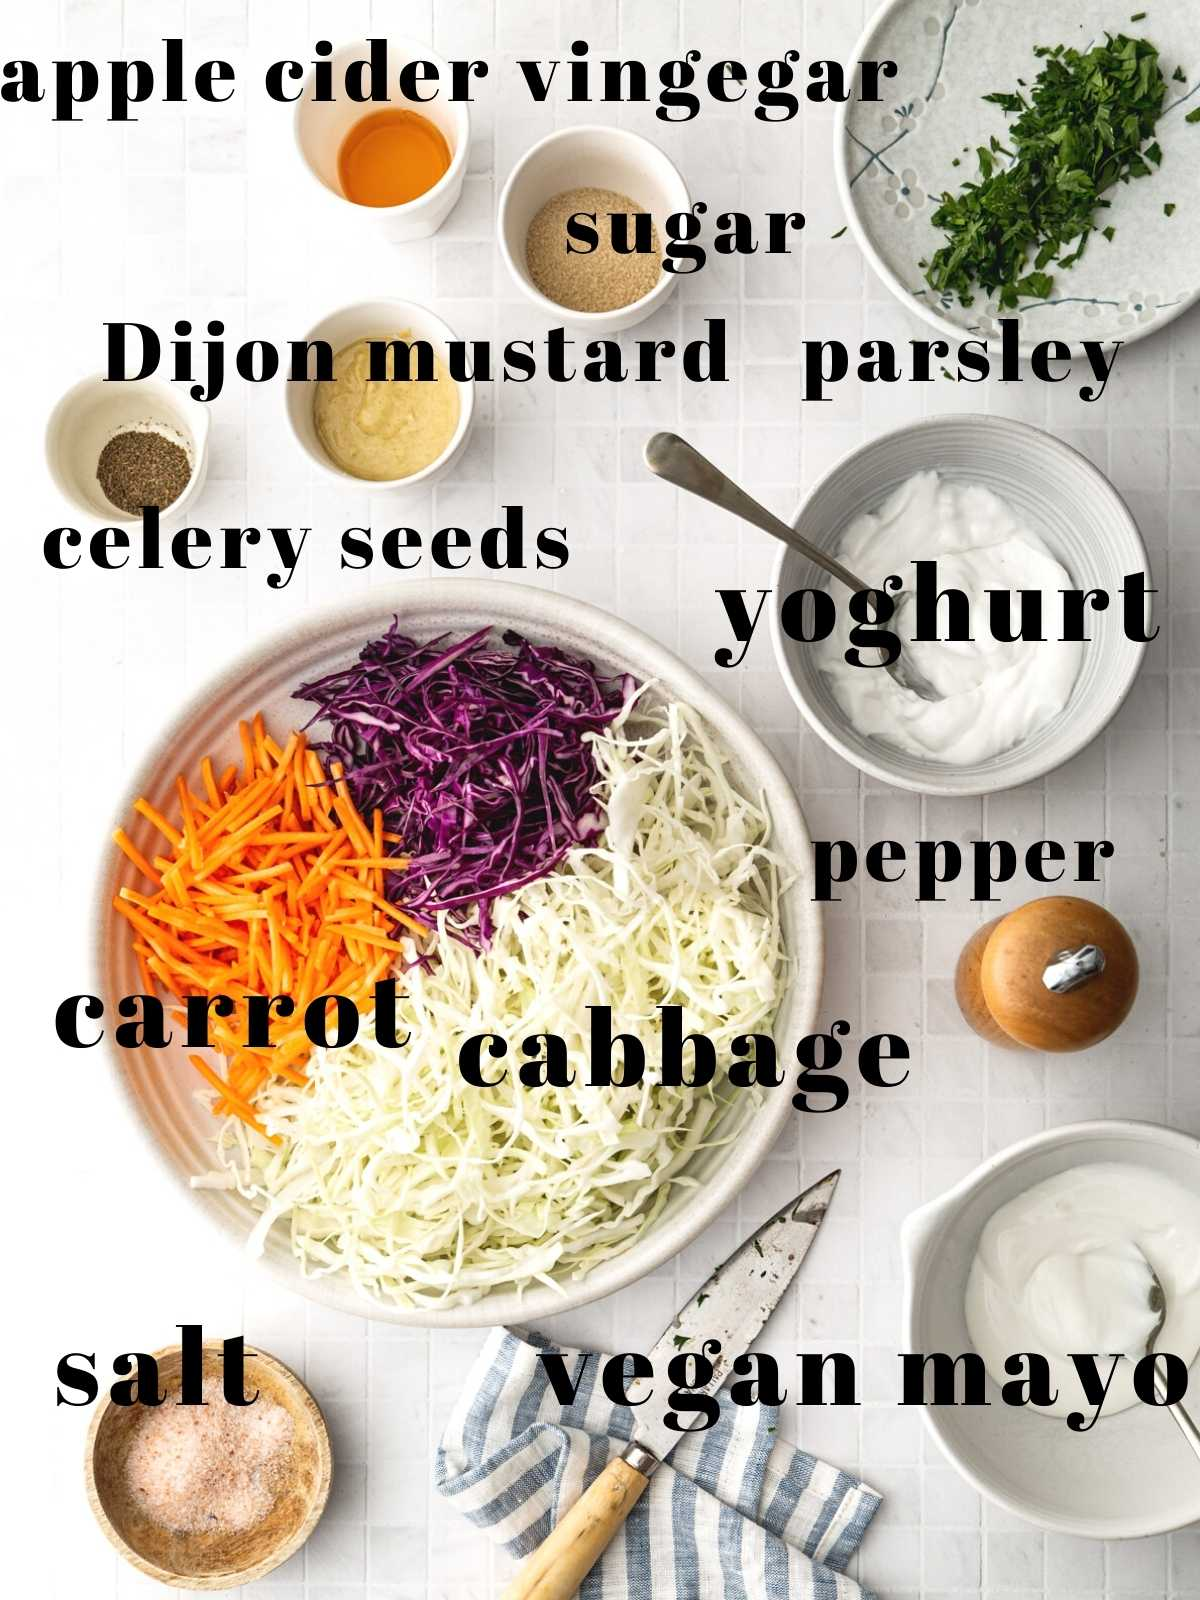 Labelled bowls of ingredients for a vegan coleslaw.